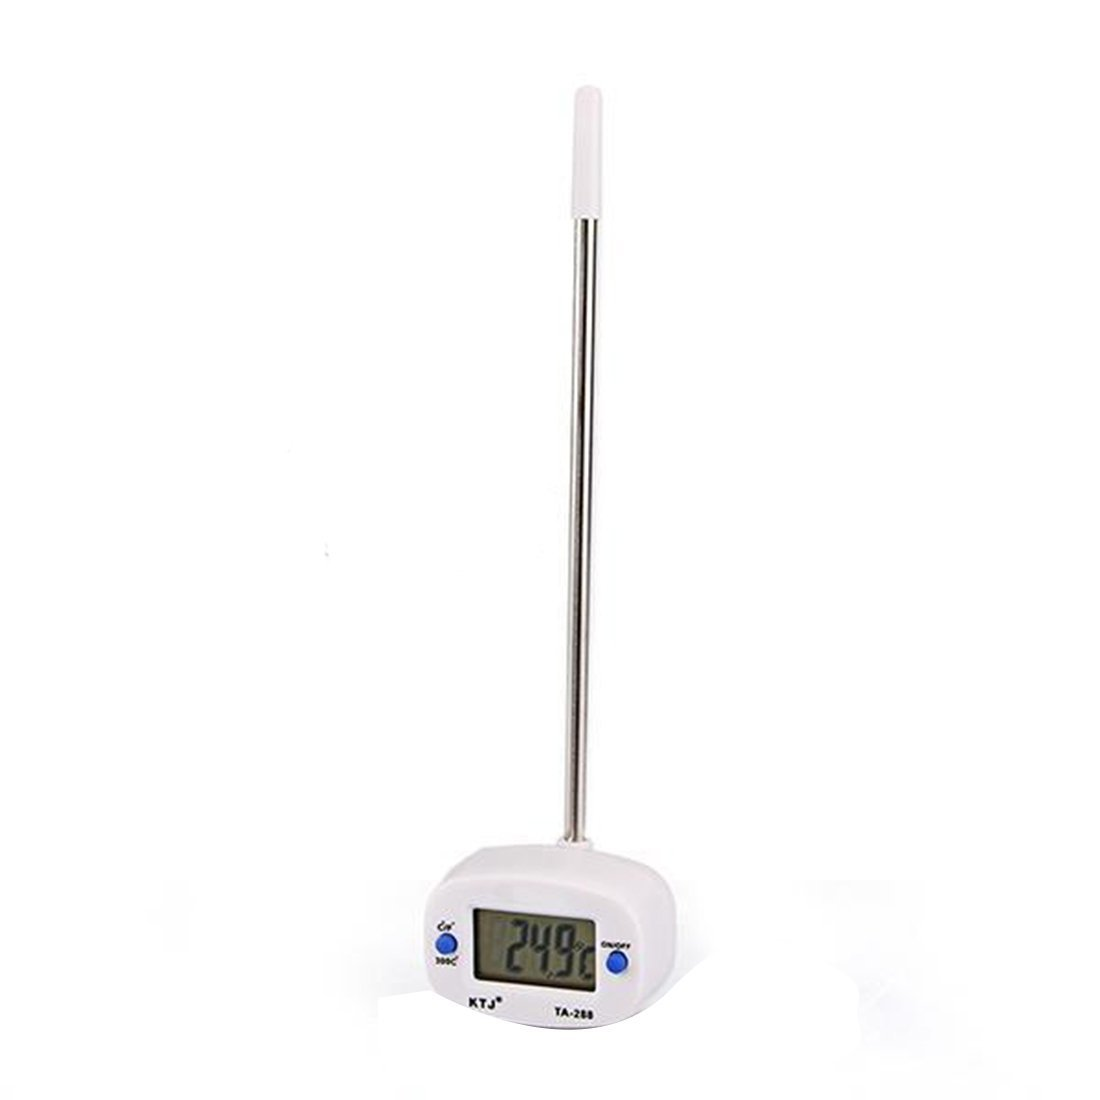 Digital Probe Thermometer Temperature Measuring Instrument Ta288 Bbq Needle Lcd Cooking Food Luwu-Store LEPAZN1147